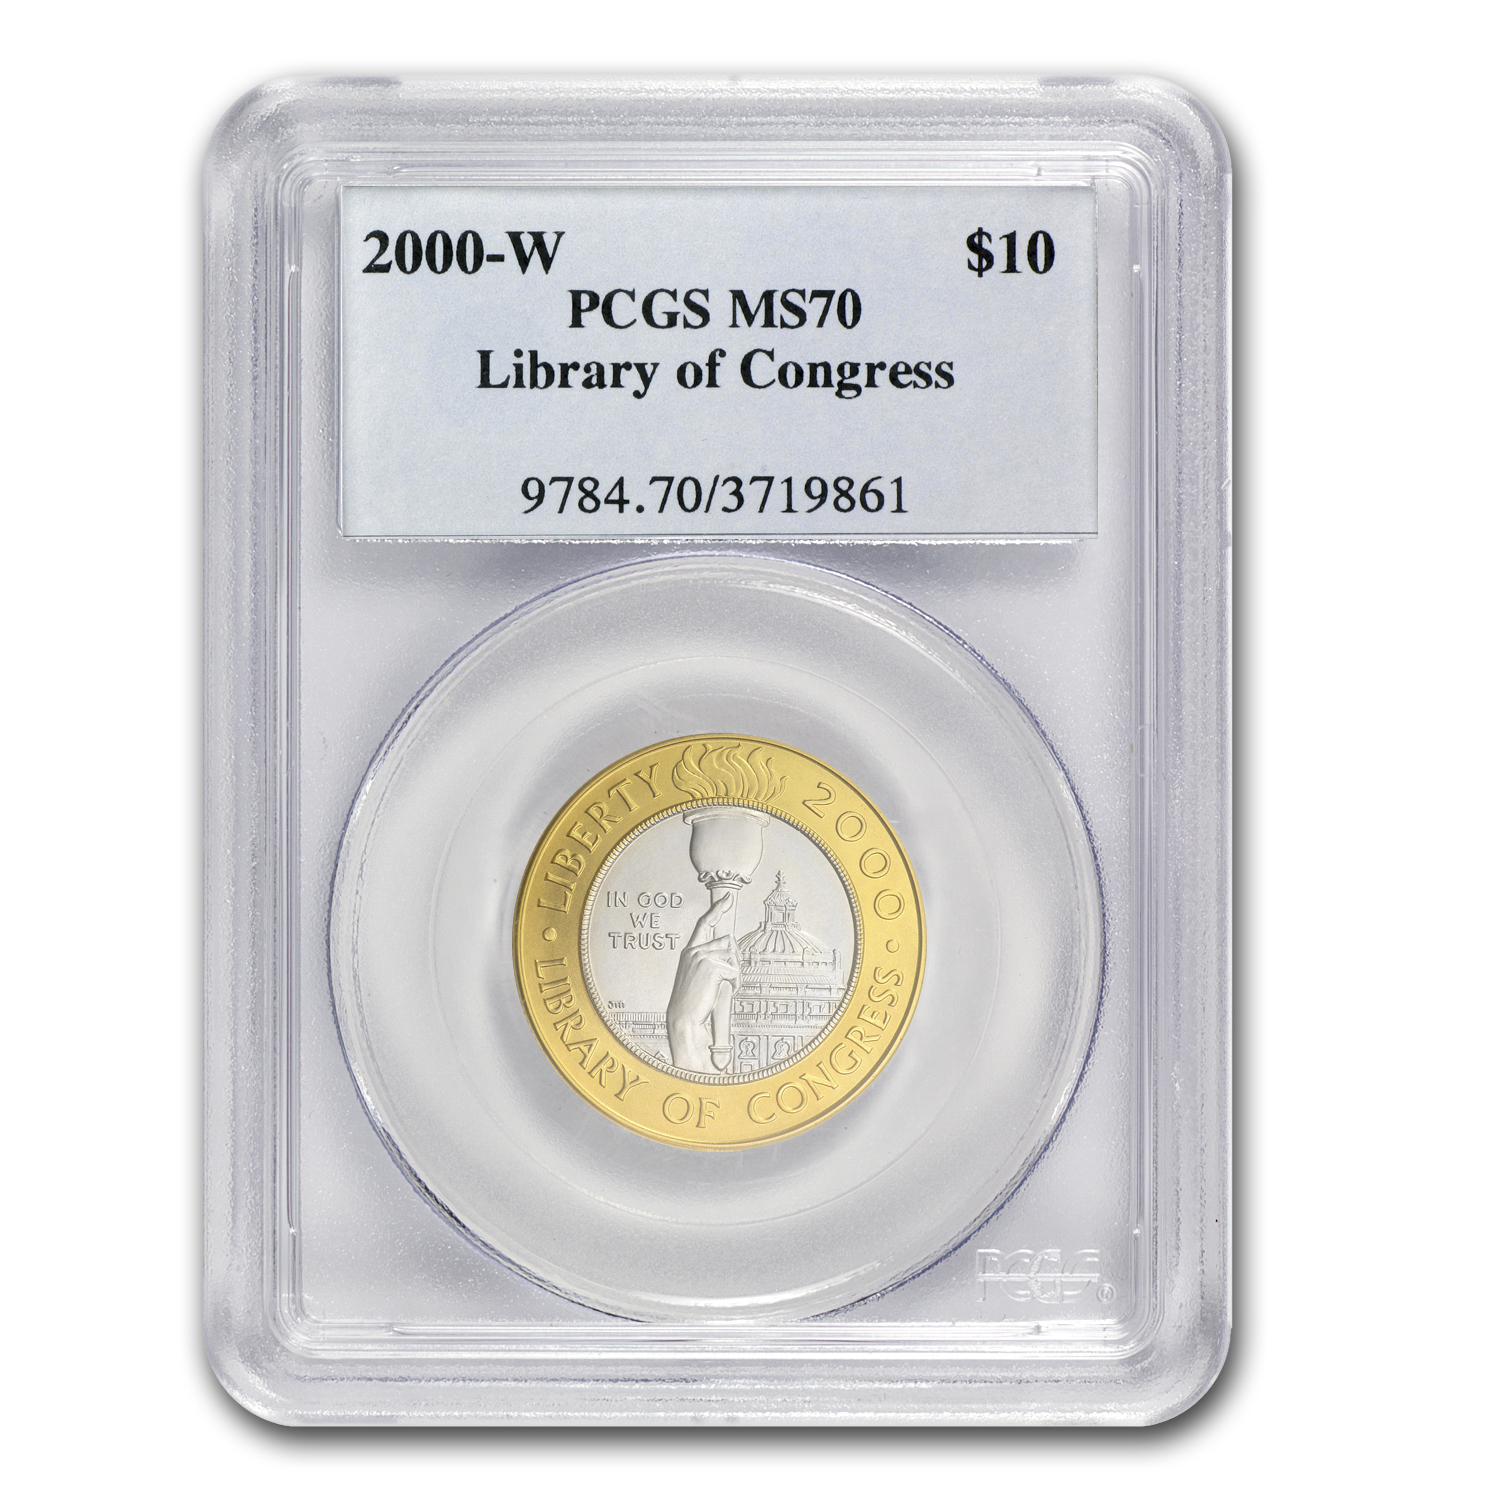 2000-W Gold/Platinum $10 Commem Library of Congress MS-70 PCGS